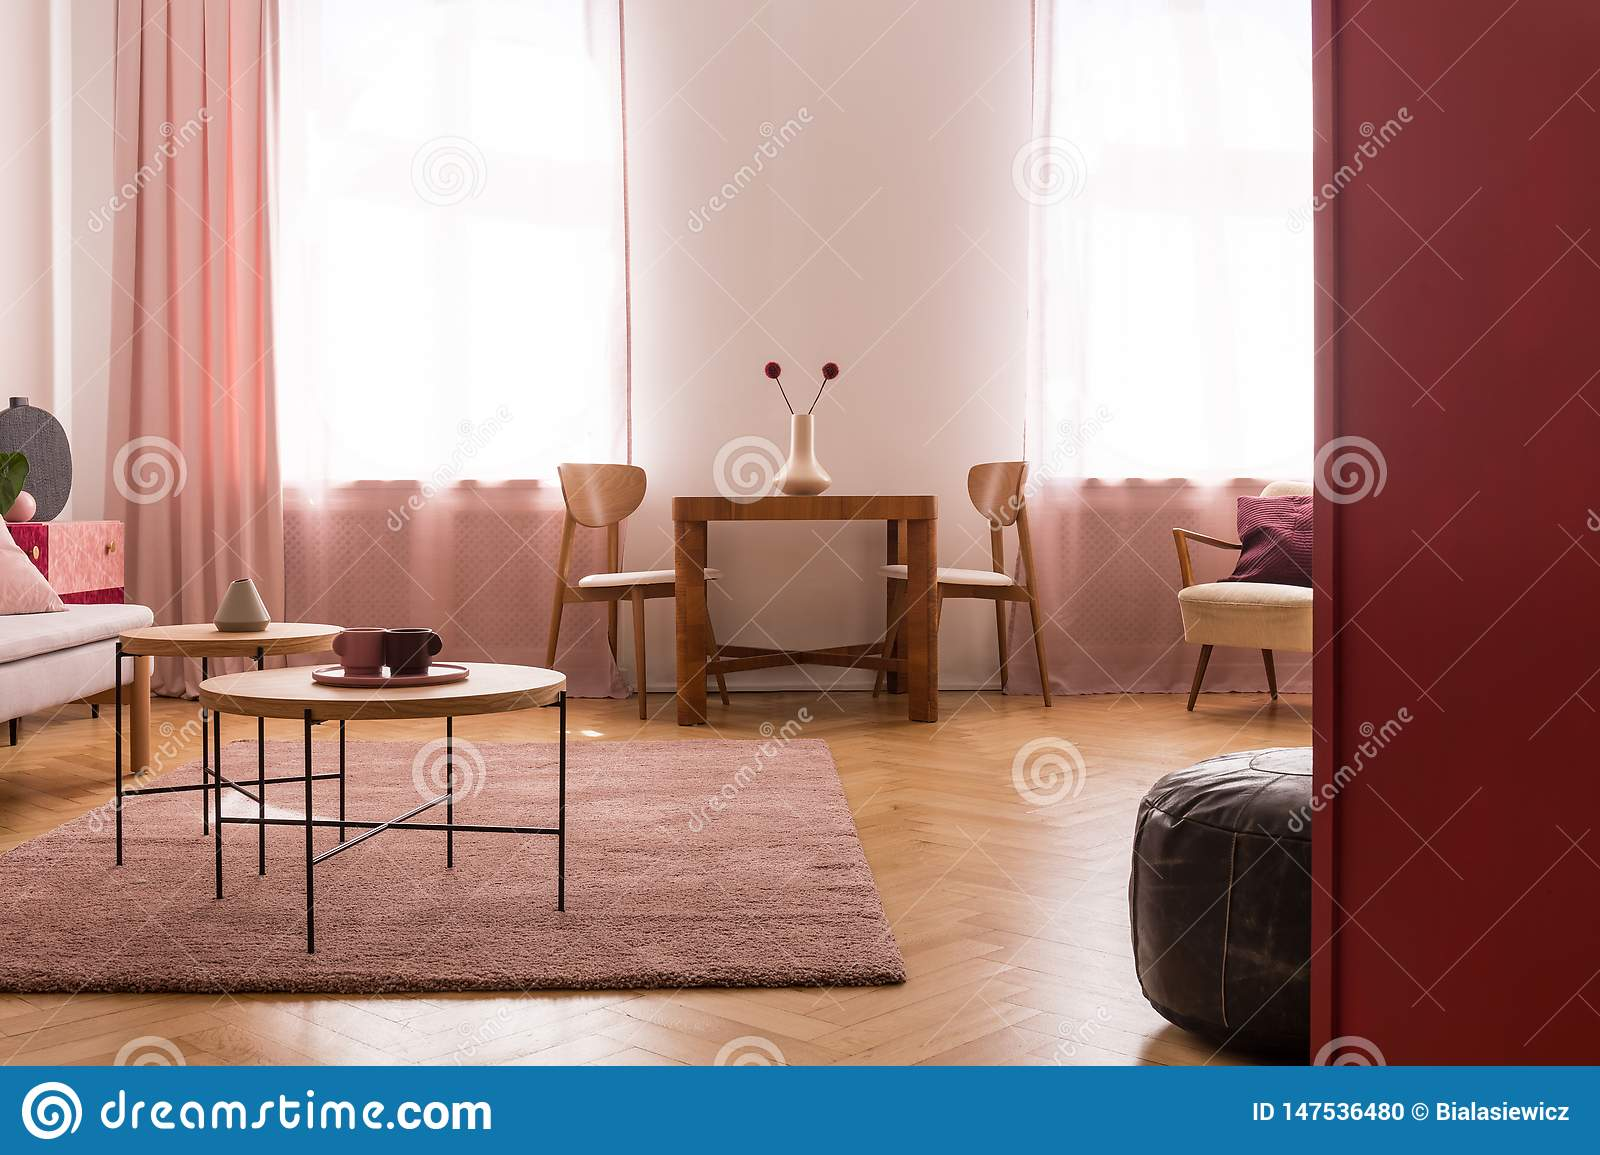 Wooden Tables On Purple Carpet In Living Room Interior With ...